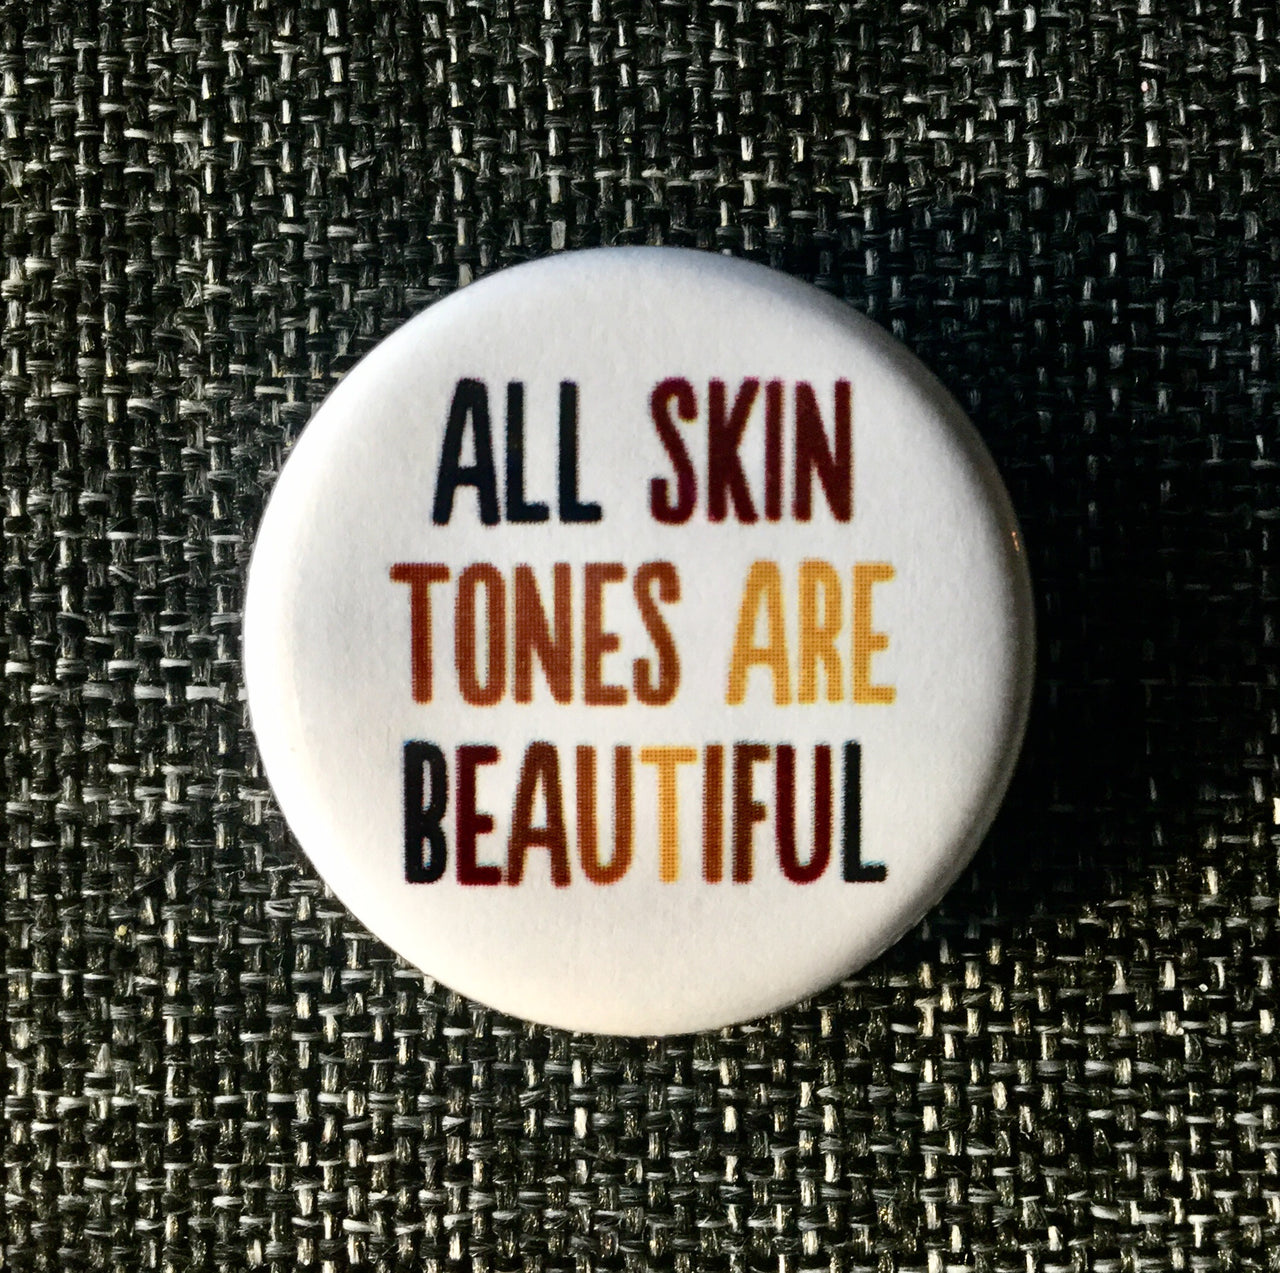 All skin tones are beautiful - Radical Buttons